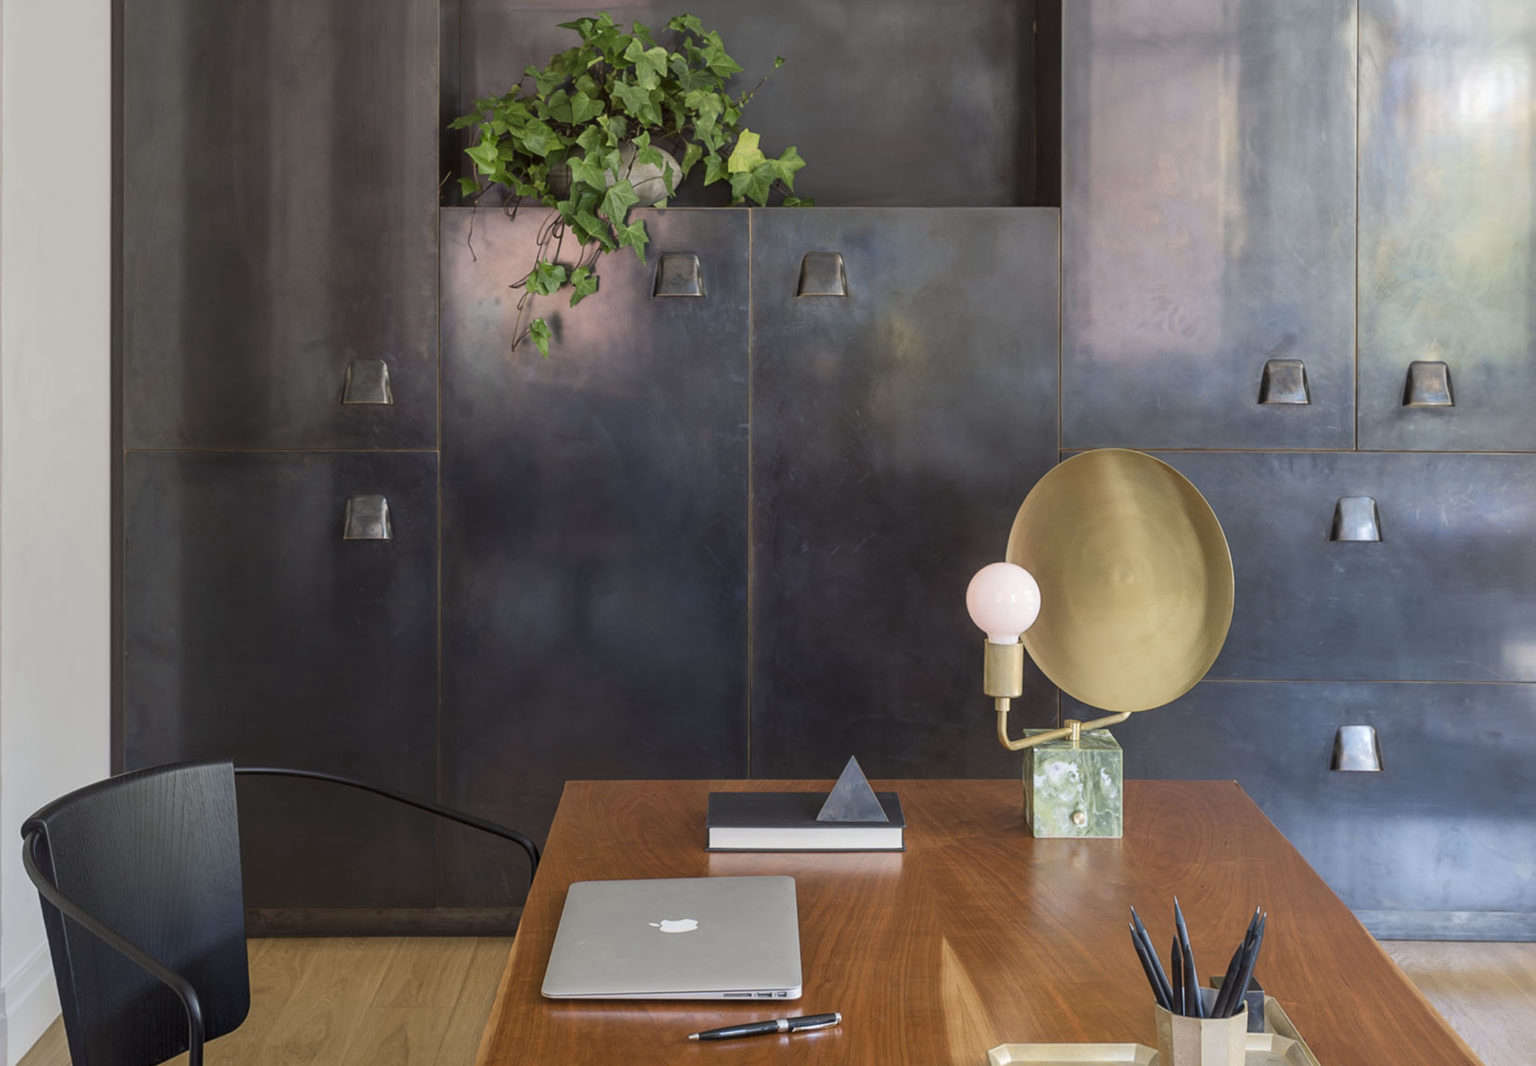 Family room by Workstead with blackened brass cabinets inspired by lockers | Remodelista